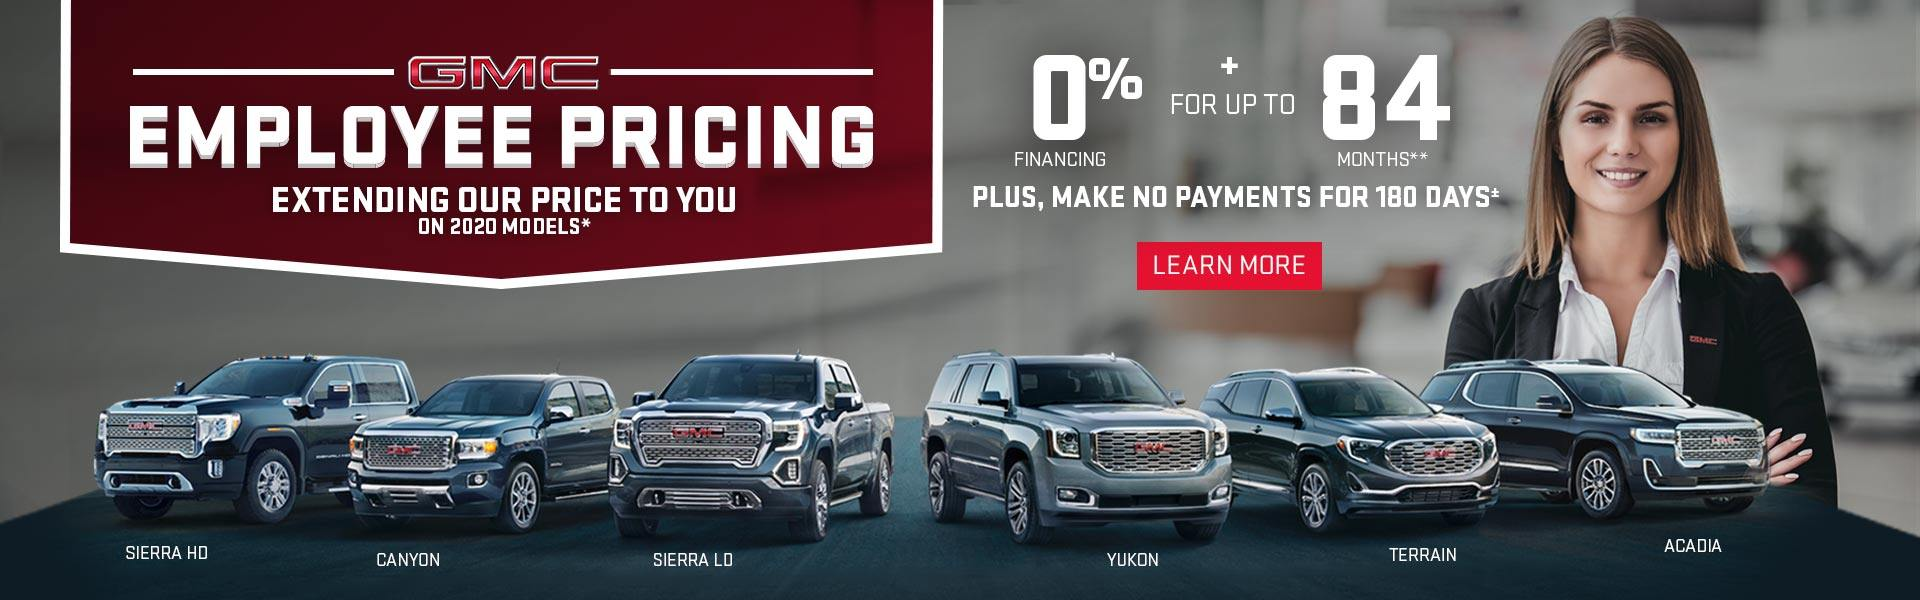 Employee Pricing on GMC Vehicles